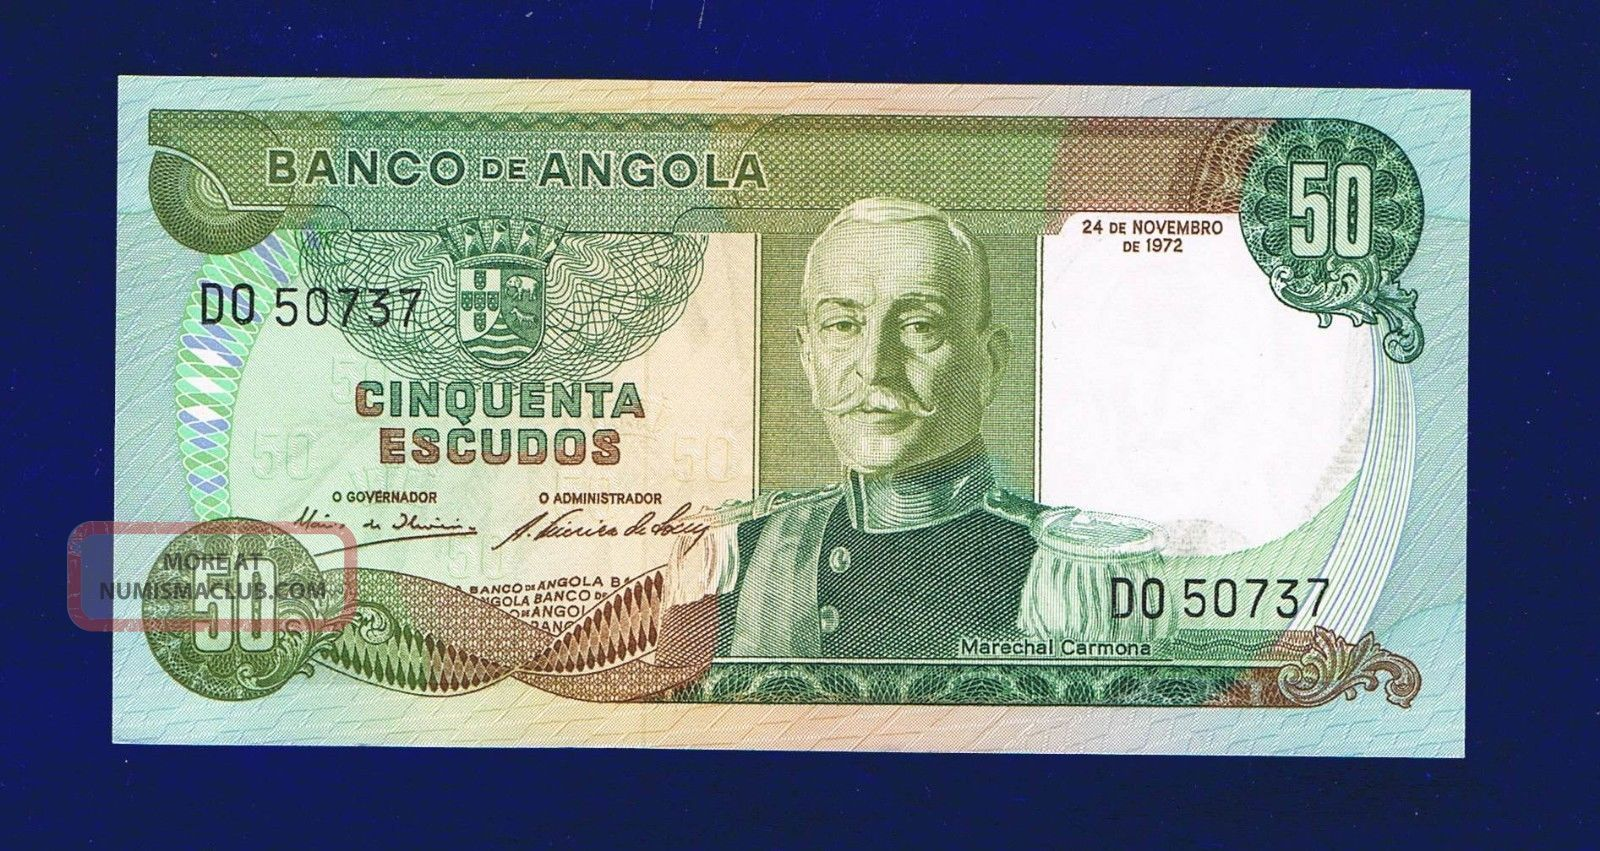 Angola Banknote 50 Escudos 1972 Unc Do50737 Africa photo